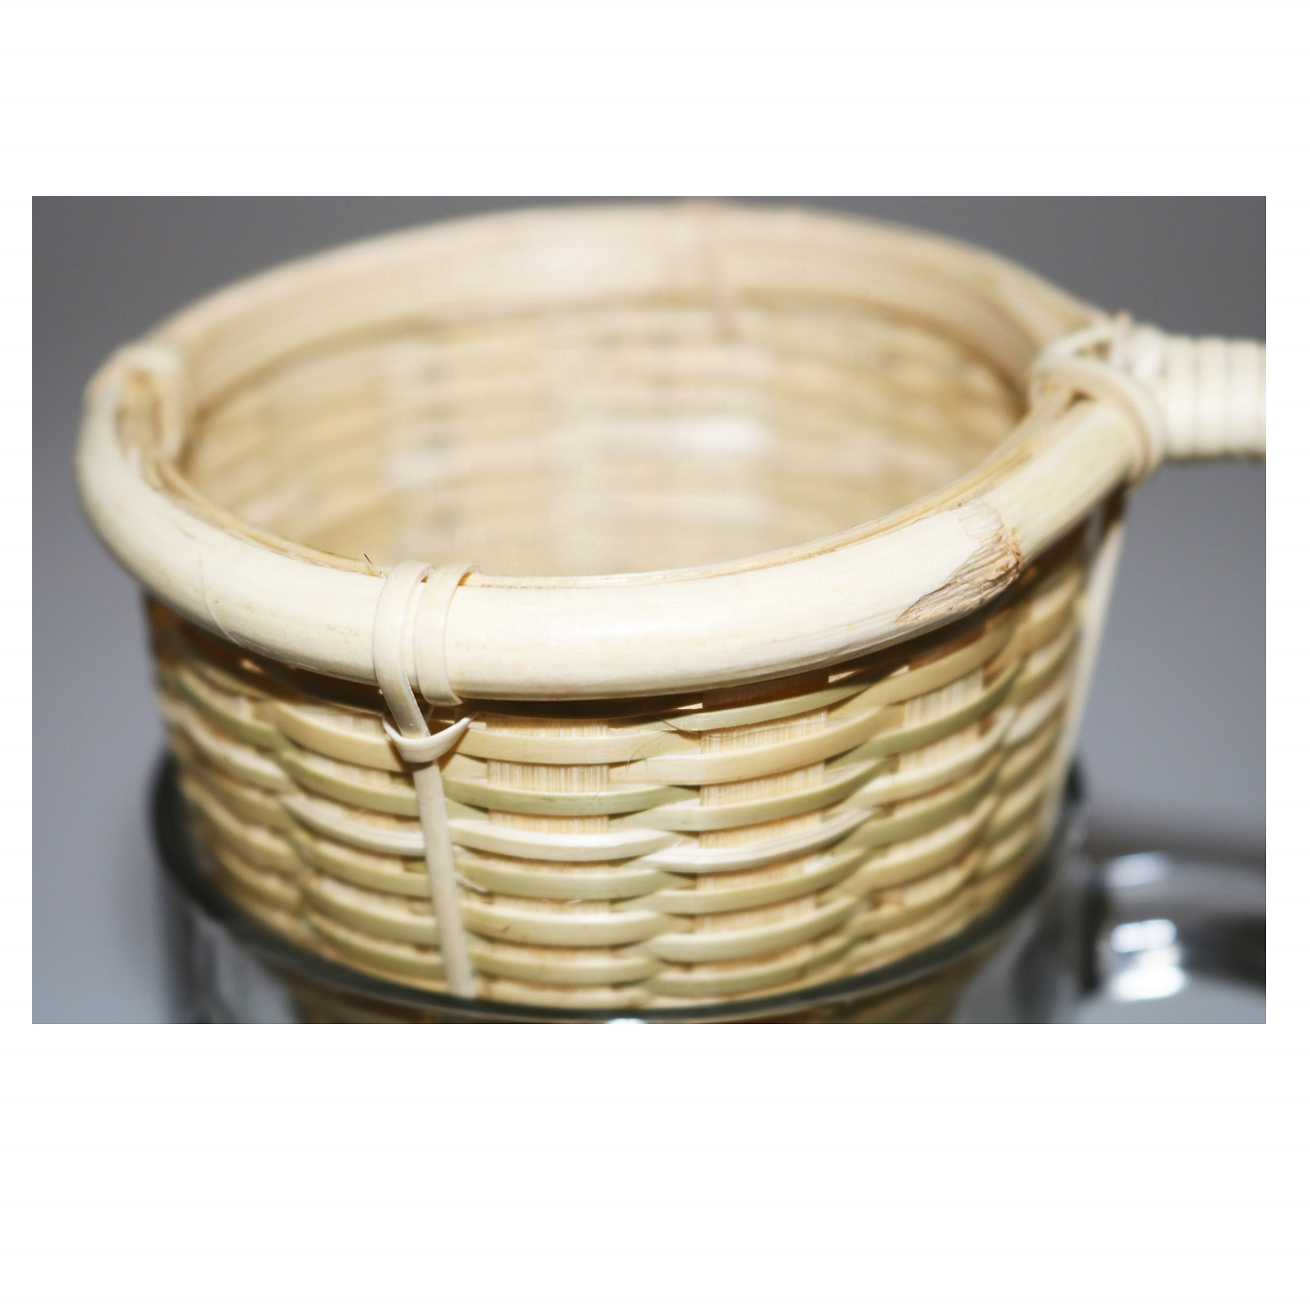 100% Natural eco friendly bamboo tea strainer coffee filter holder (Made in VietNam)